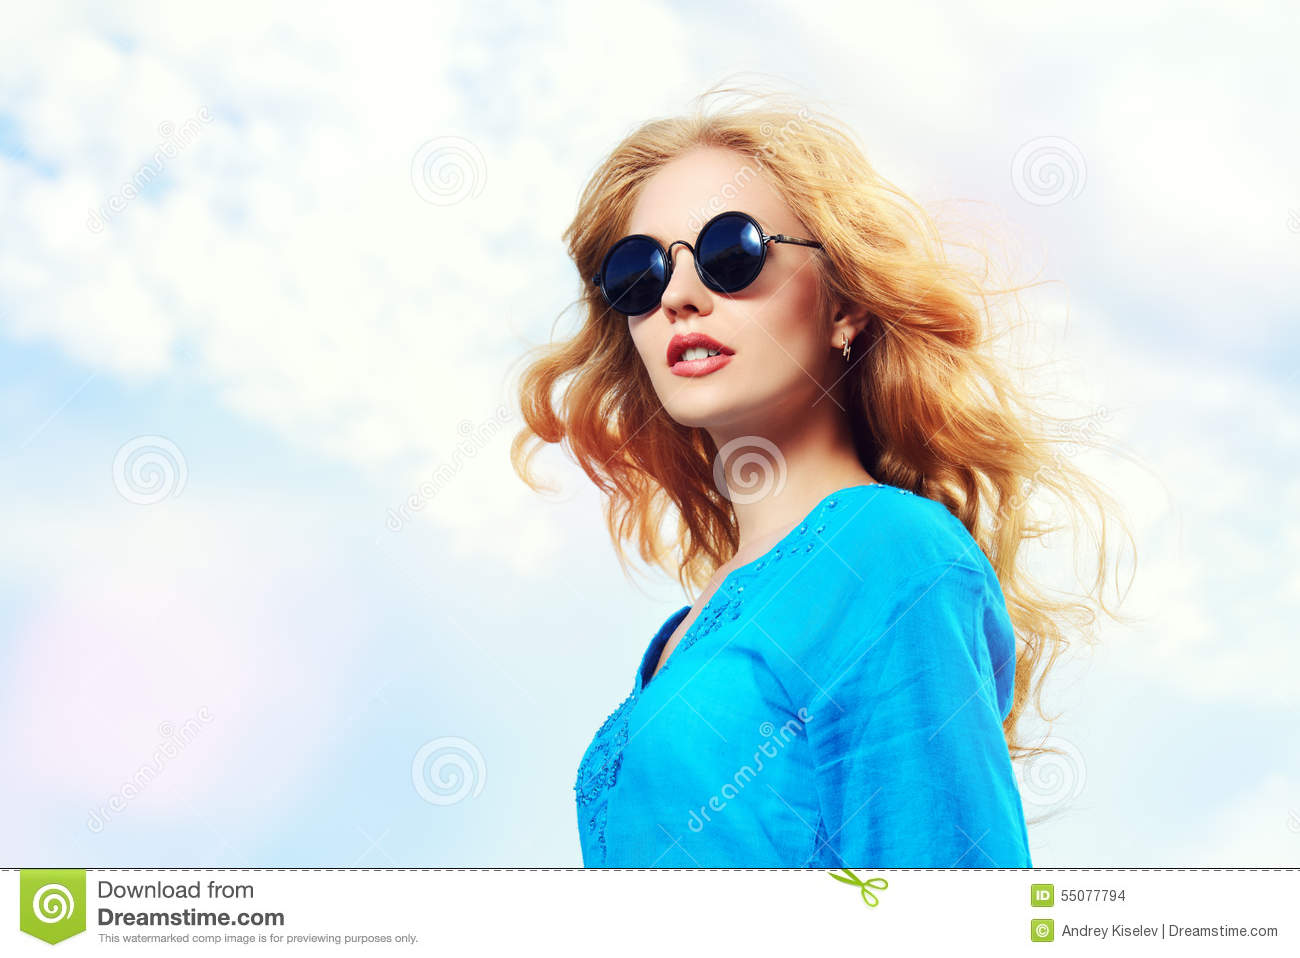 b035066a90 Gorgeous young woman with beautiful wavy hair wearing casual blouse and sunglasses  posing outdoor. Fashion shot.